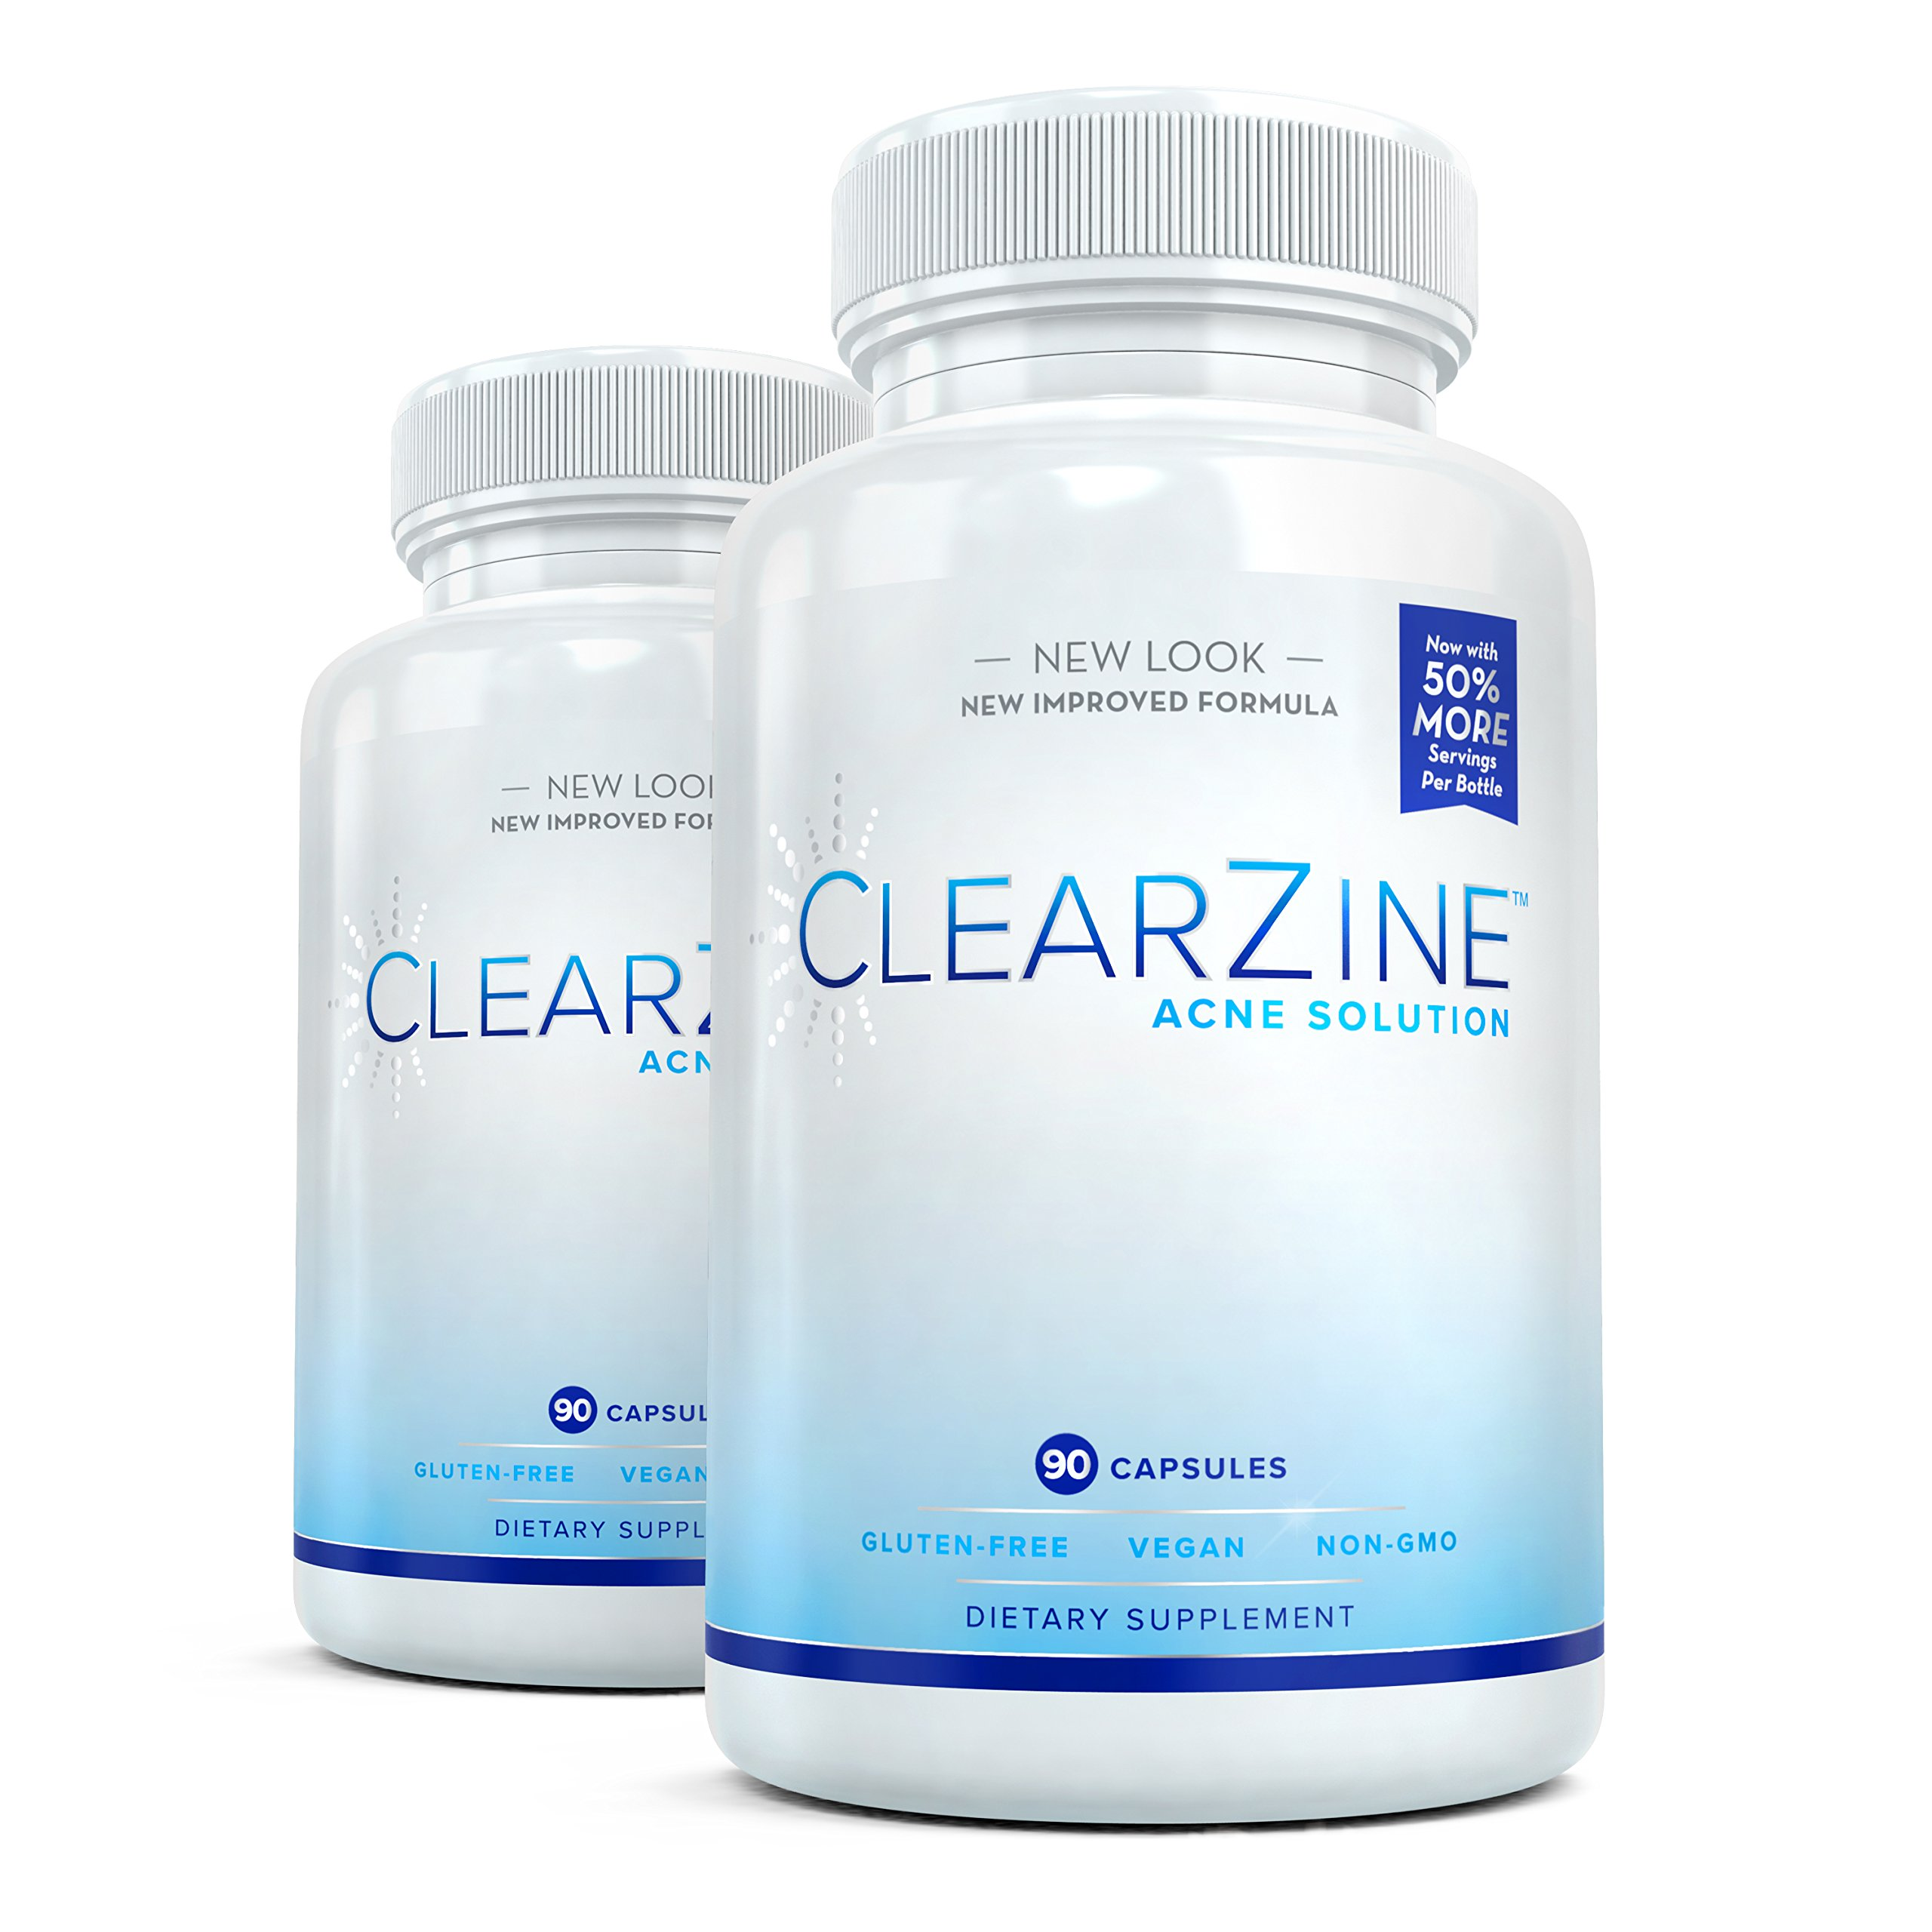 ClearZine Acne Pills for Teens & Adults | Clear Skin Supplement, Vitamins for Hormonal & Cystic Acne | Stop Breakouts, Oily Skin with Milk Thistle, Pantothenic Acid & Zinc, 2 Bottles, 90 Caps Each